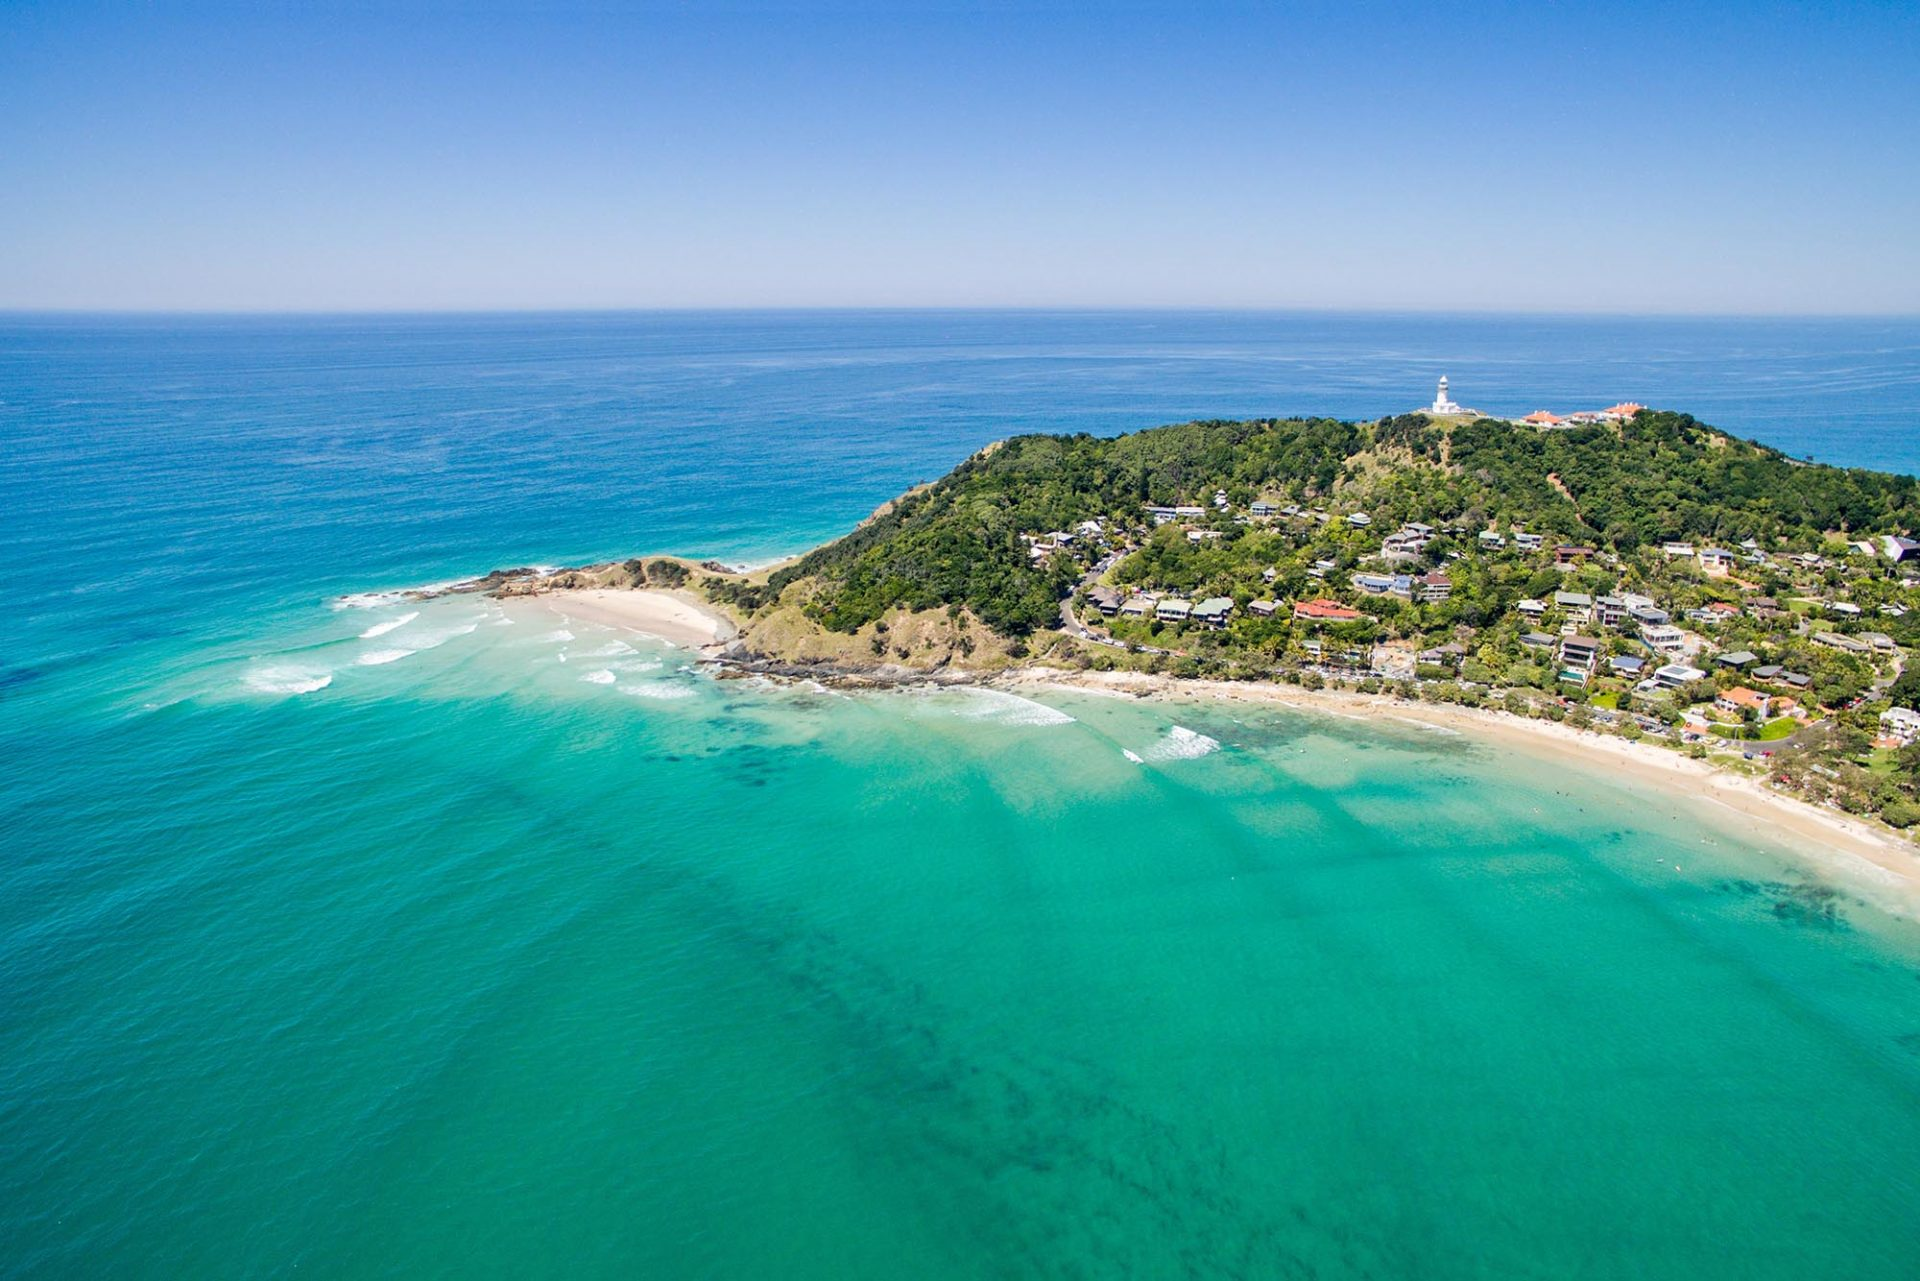 Byron Bay lighthouse and beach 1920x1281 4